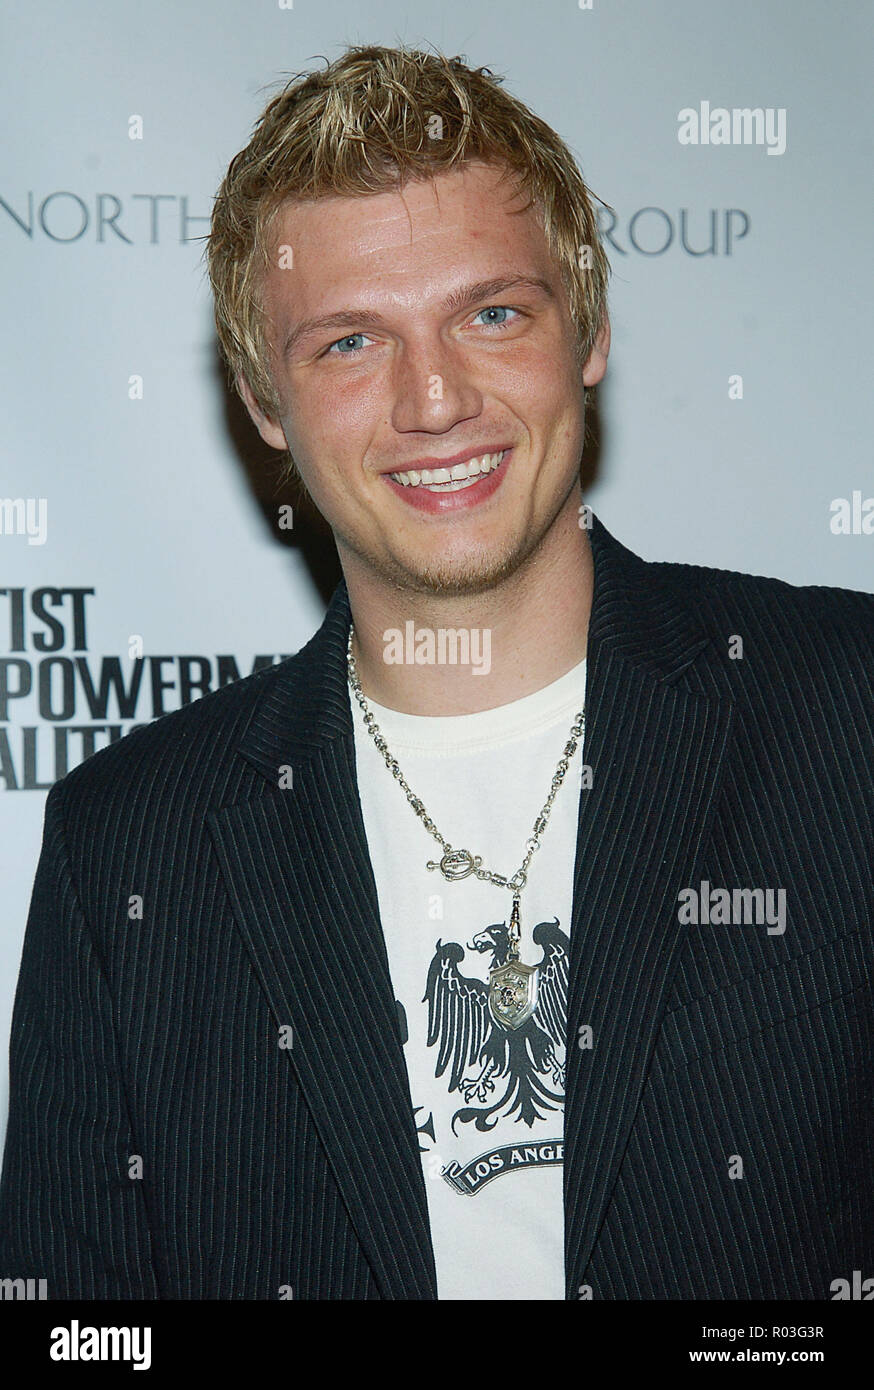 Nick Carter arriving at the 3rd Annual Empowerment Coalition Pre-Grammy Brunch at the bevely Hilton in Los Angeles. February 12, 2005.06-CarterNick125 Red Carpet Event, Vertical, USA, Film Industry, Celebrities,  Photography, Bestof, Arts Culture and Entertainment, Topix Celebrities fashion /  Vertical, Best of, Event in Hollywood Life - California,  Red Carpet and backstage, USA, Film Industry, Celebrities,  movie celebrities, TV celebrities, Music celebrities, Photography, Bestof, Arts Culture and Entertainment,  Topix, headshot, vertical, one person,, from the year , 2005, inquiry tsuni@Gam - Stock Image